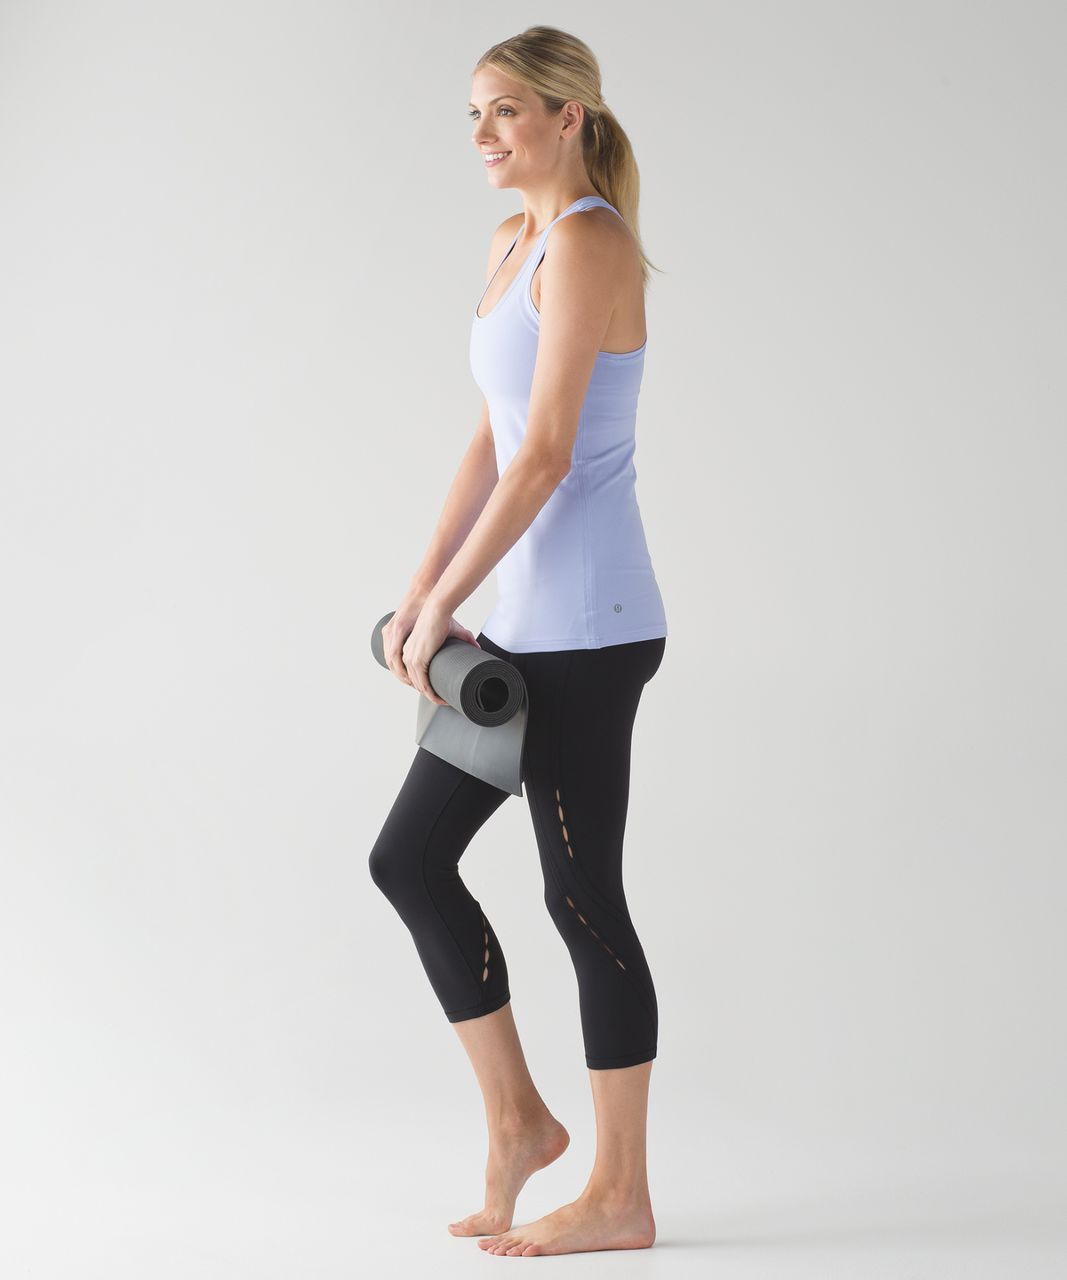 Lululemon Wunder Under Crop (Hi-Rise) (Peek) - Black (First Release)